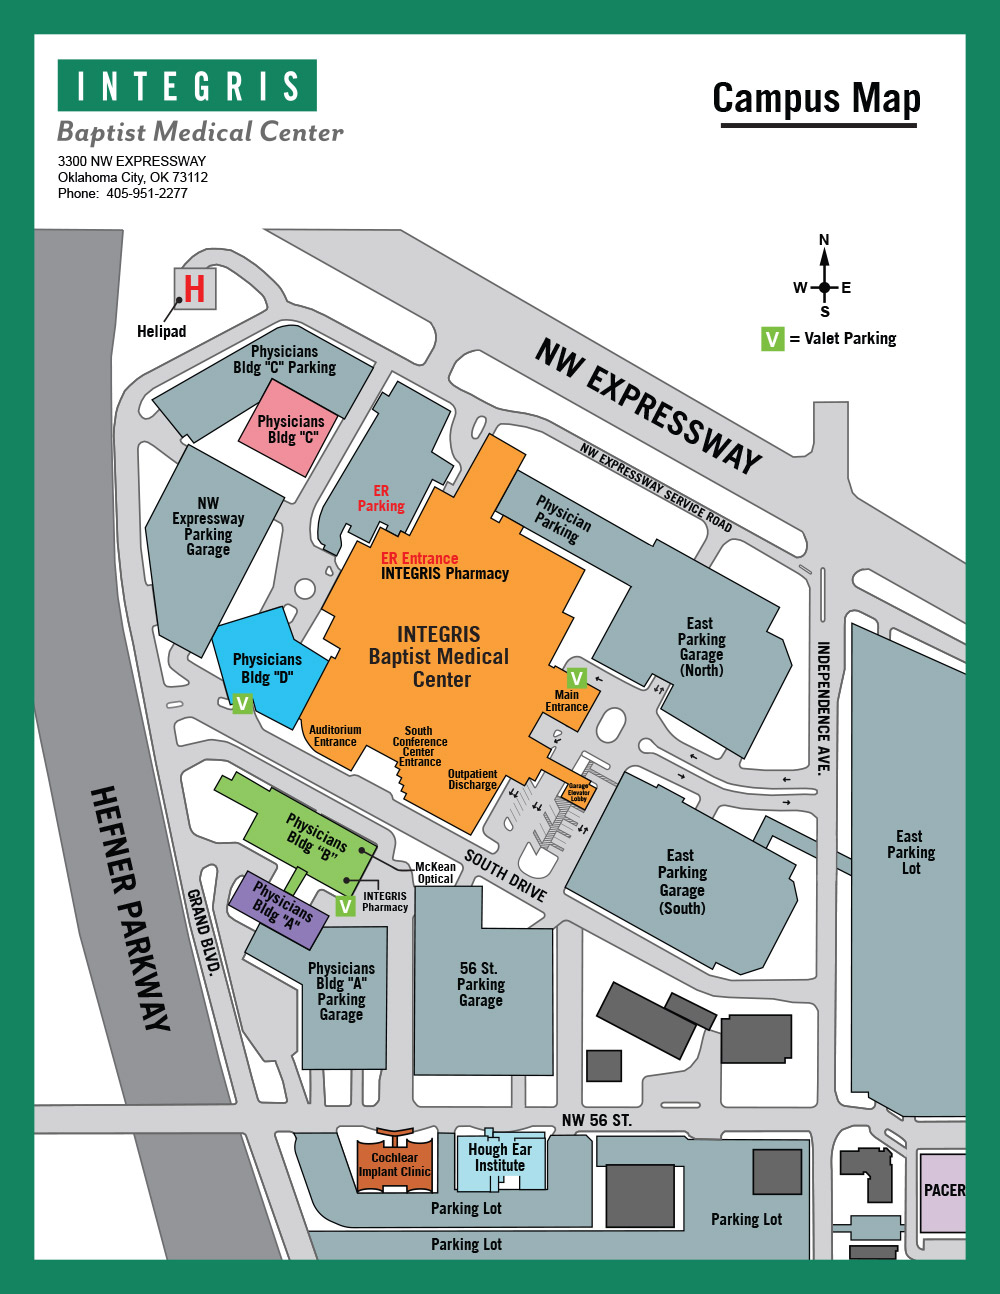 INTEGRIS Baptist Medical Center Campus Map